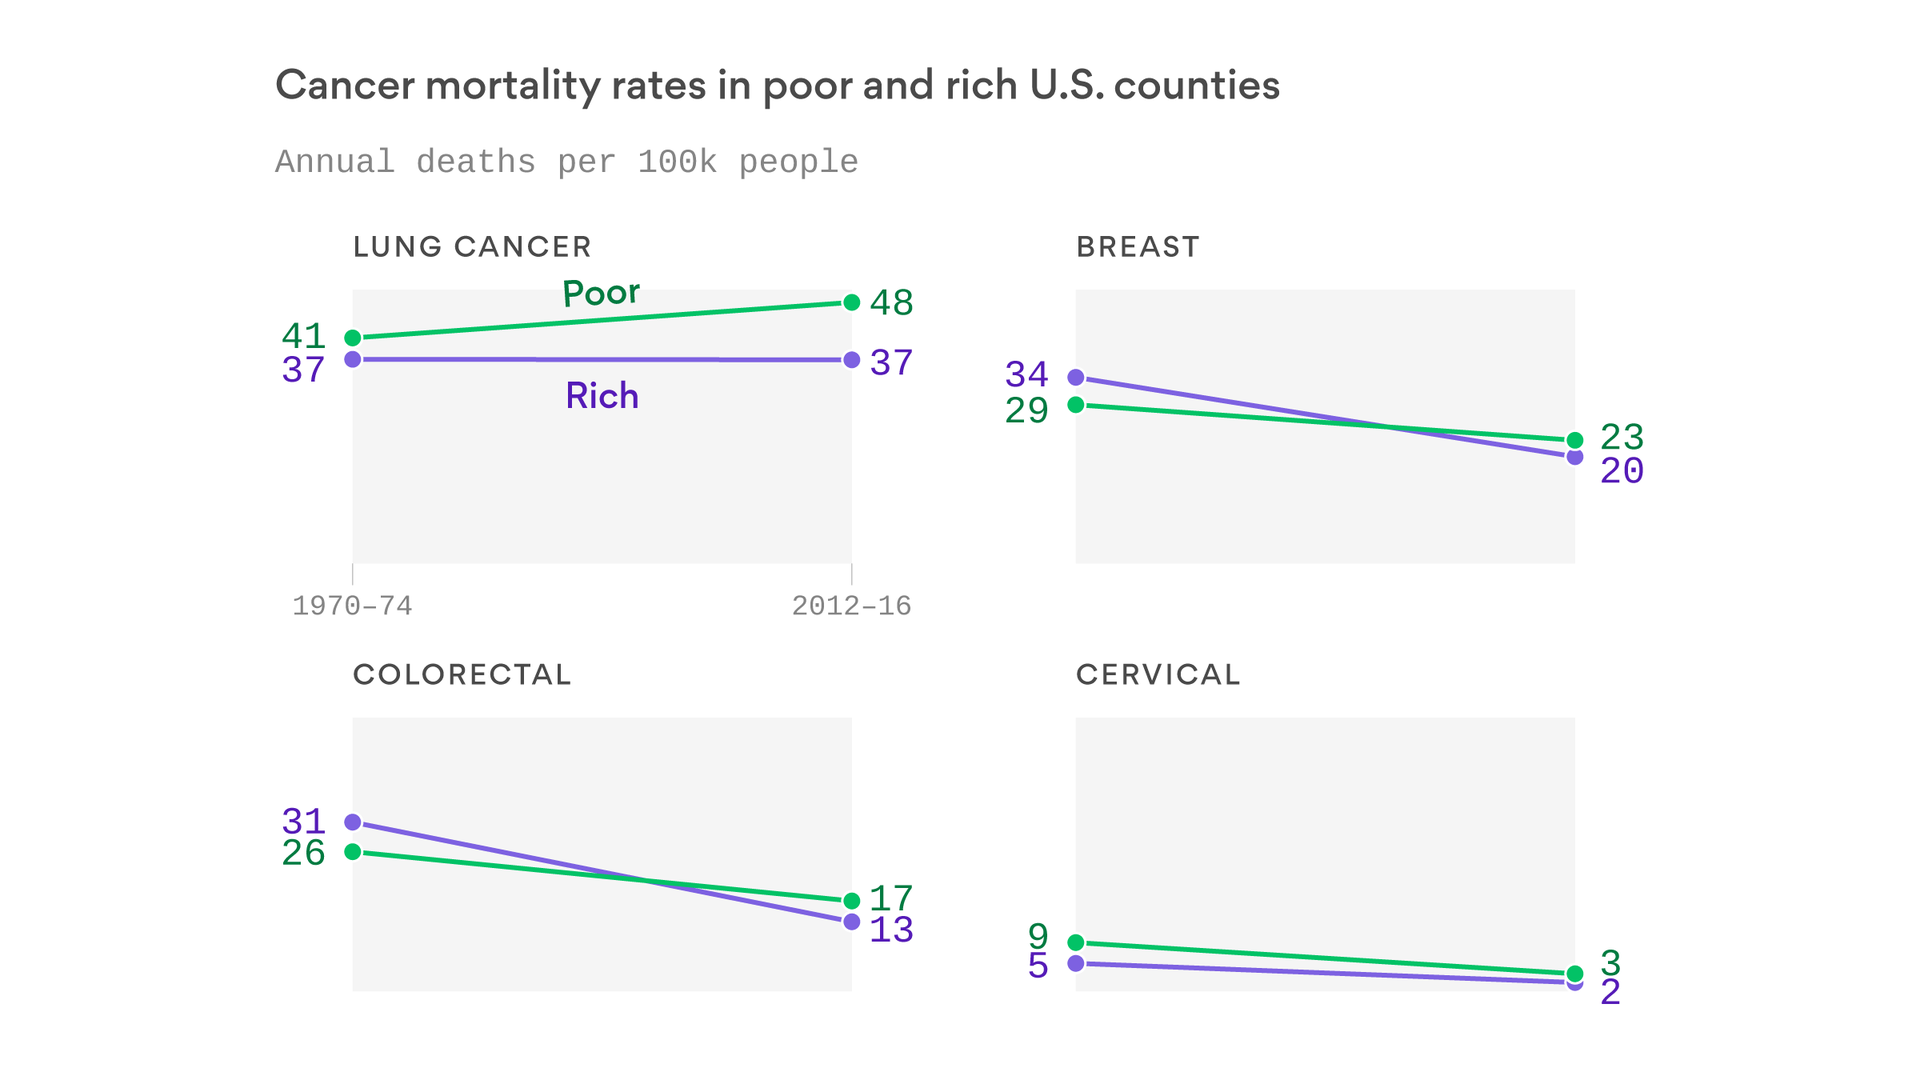 As cancer mortality declines, gap between rich and poor